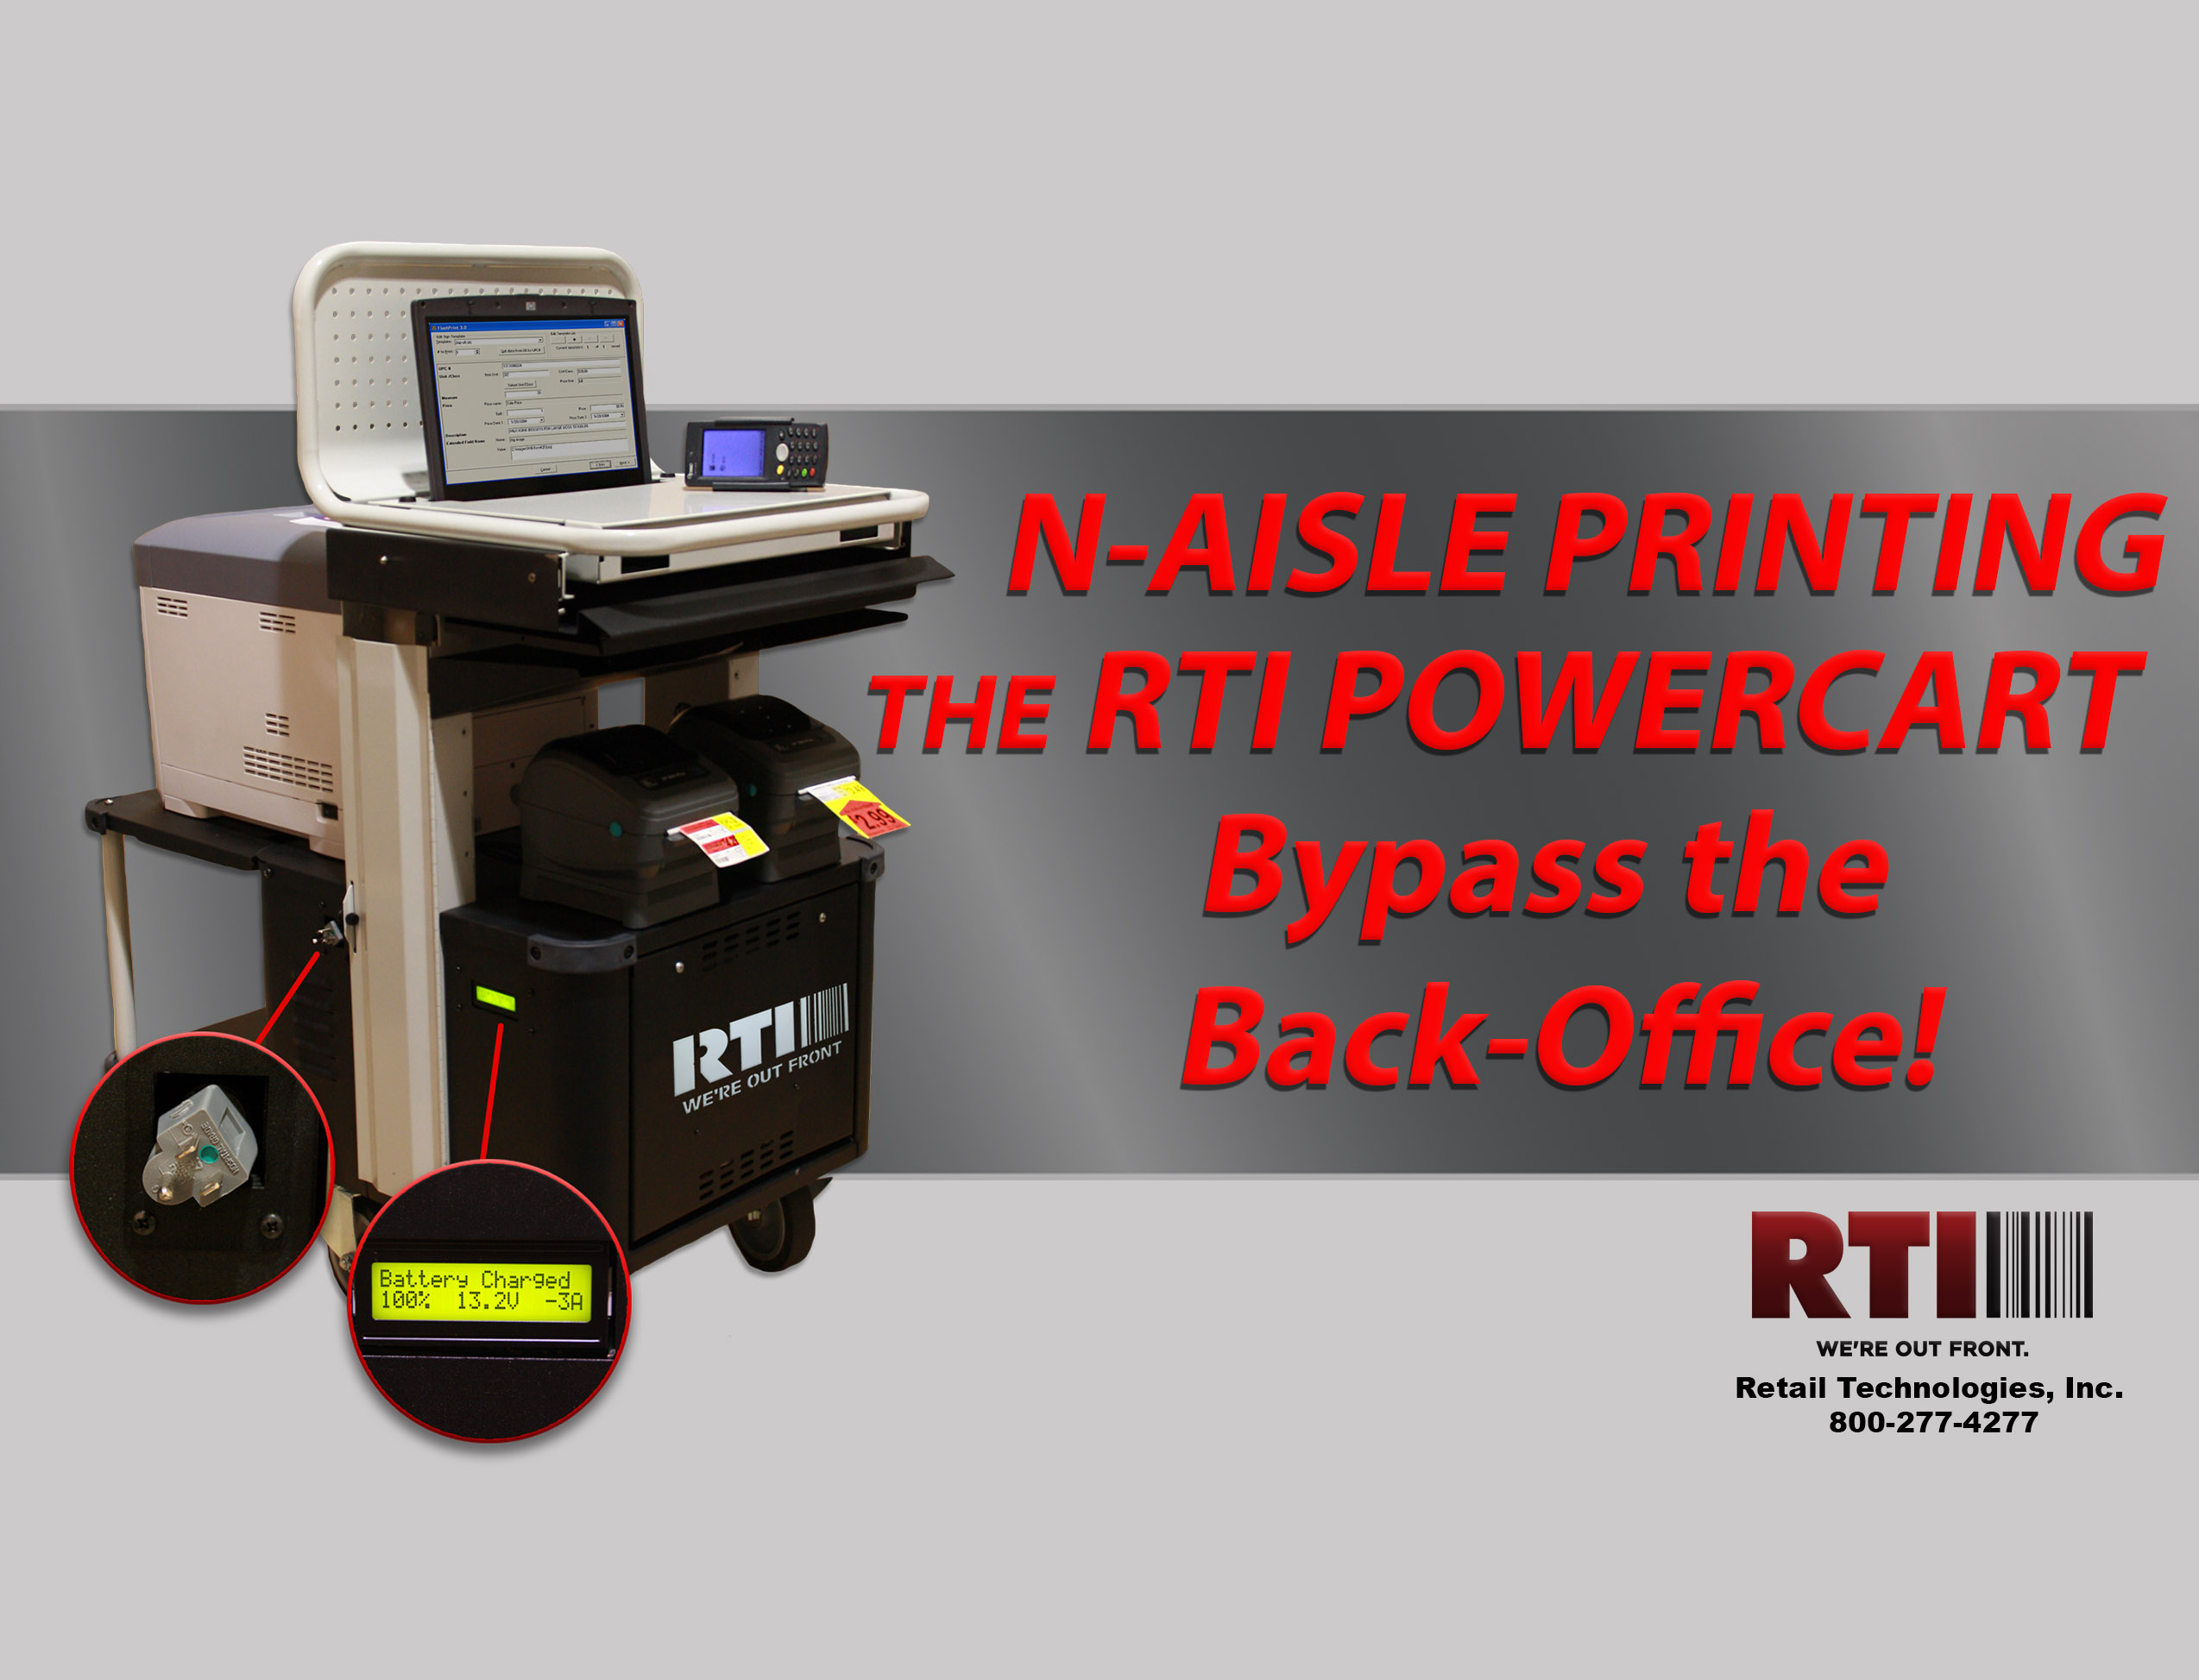 N-Aisle Printing with the RTI Powercart! Bypass the Back Office!